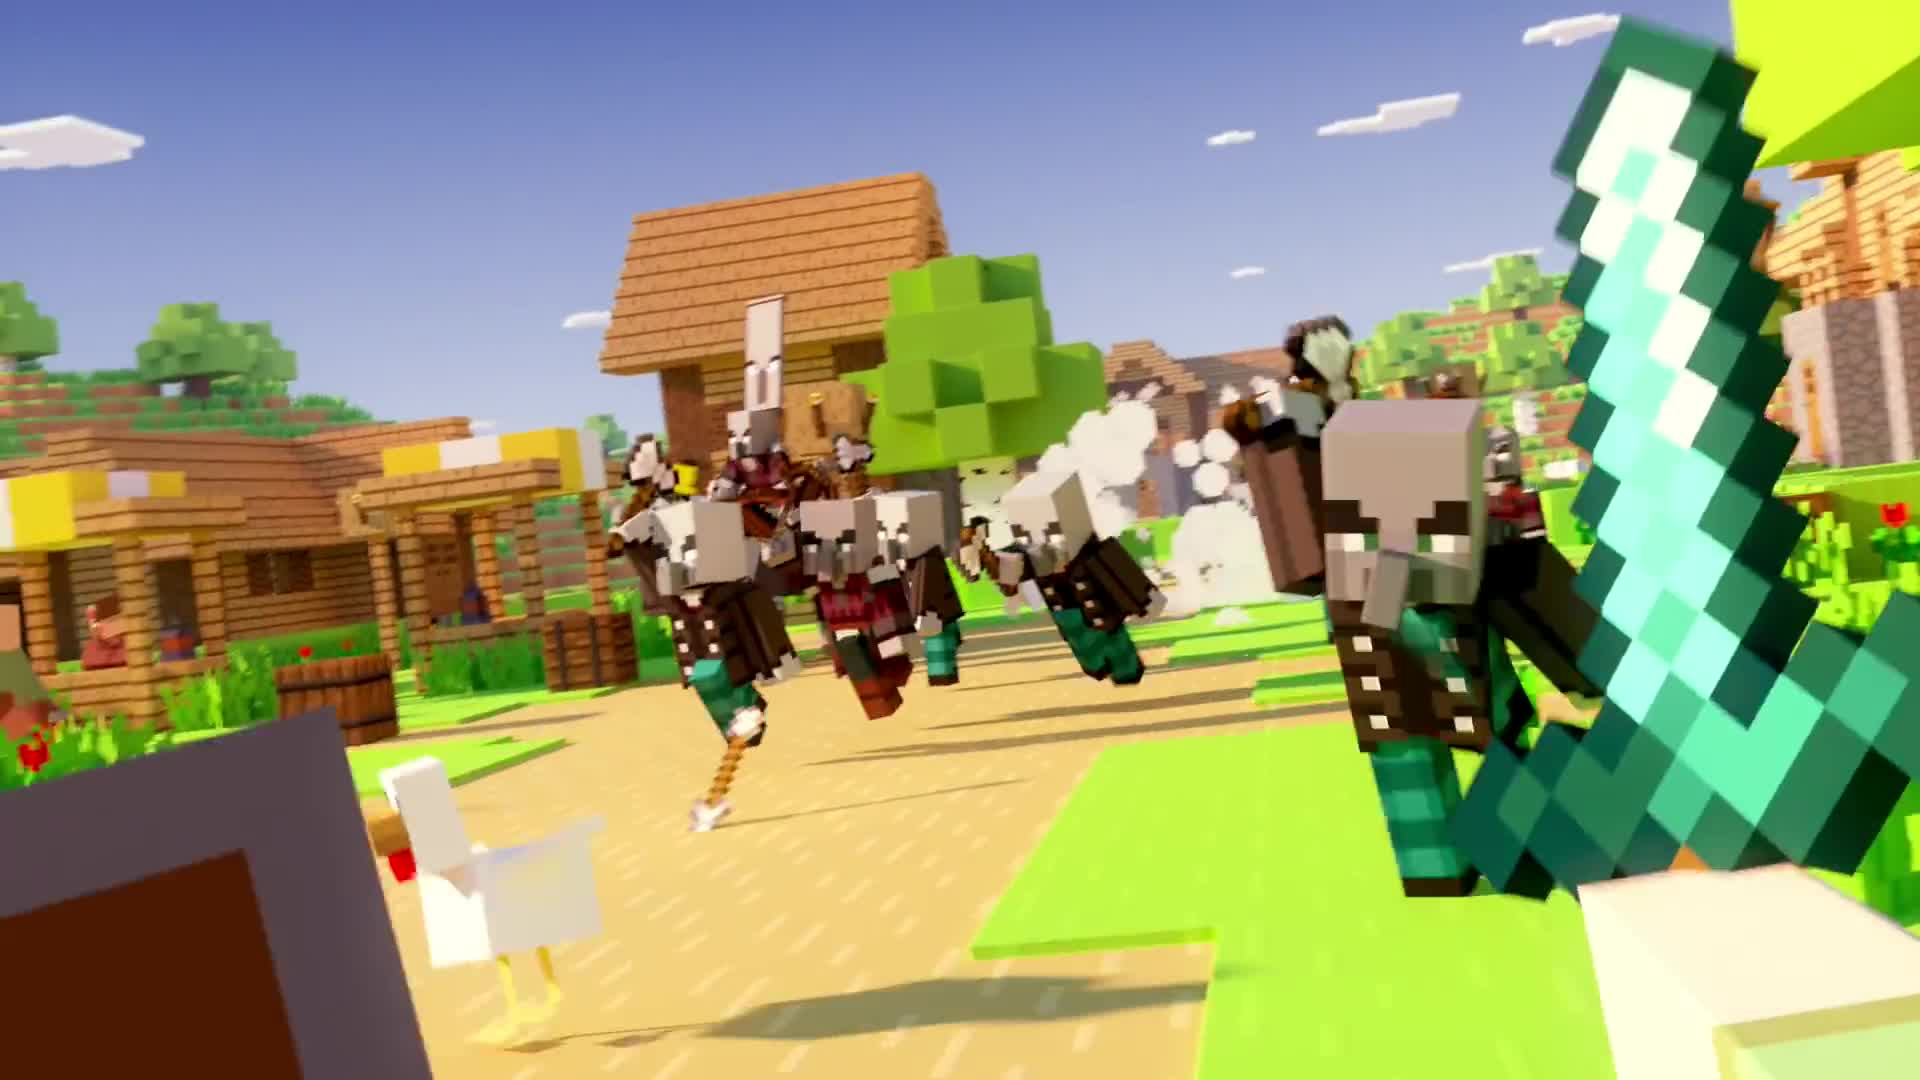 Minecraft, Xbox, Xbox One, Xbox360, illager, illagers, village & pillage, village and pillage, villages, xbox 360, Minecraft Village & Pillage Update Launch Trailer GIFs